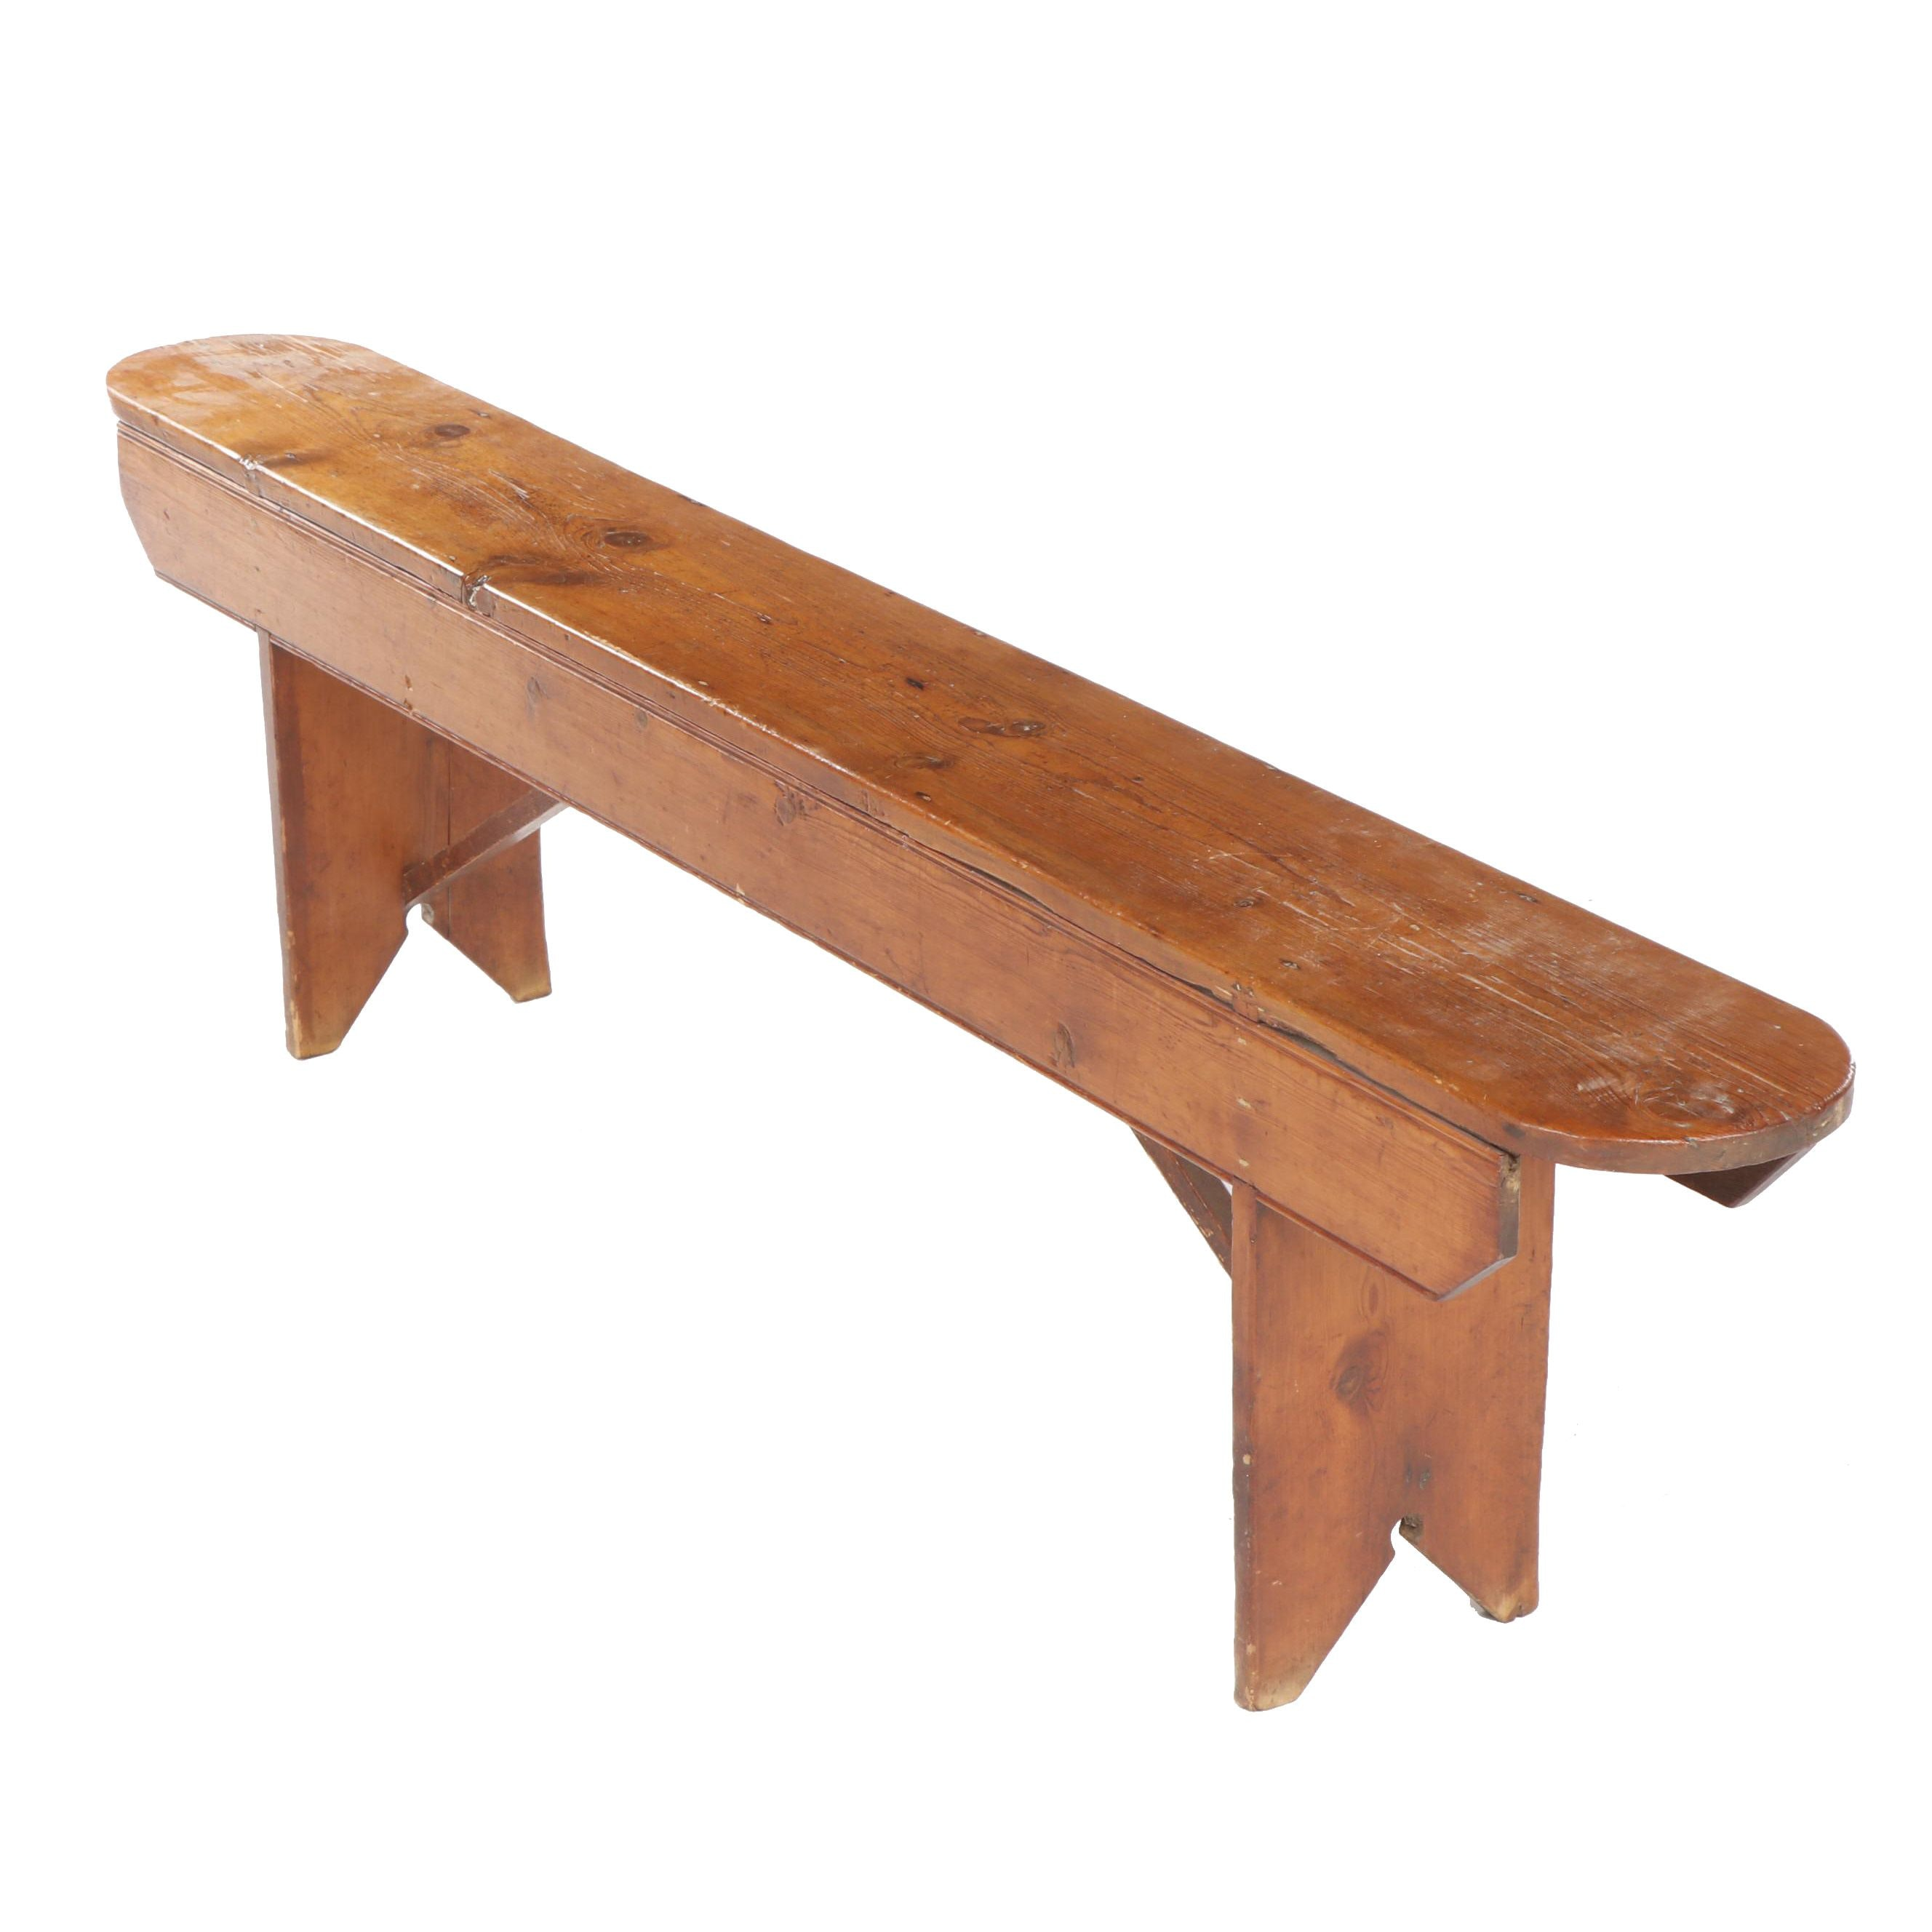 American Primitive Oblong Pine Bench, 19th Century and Later